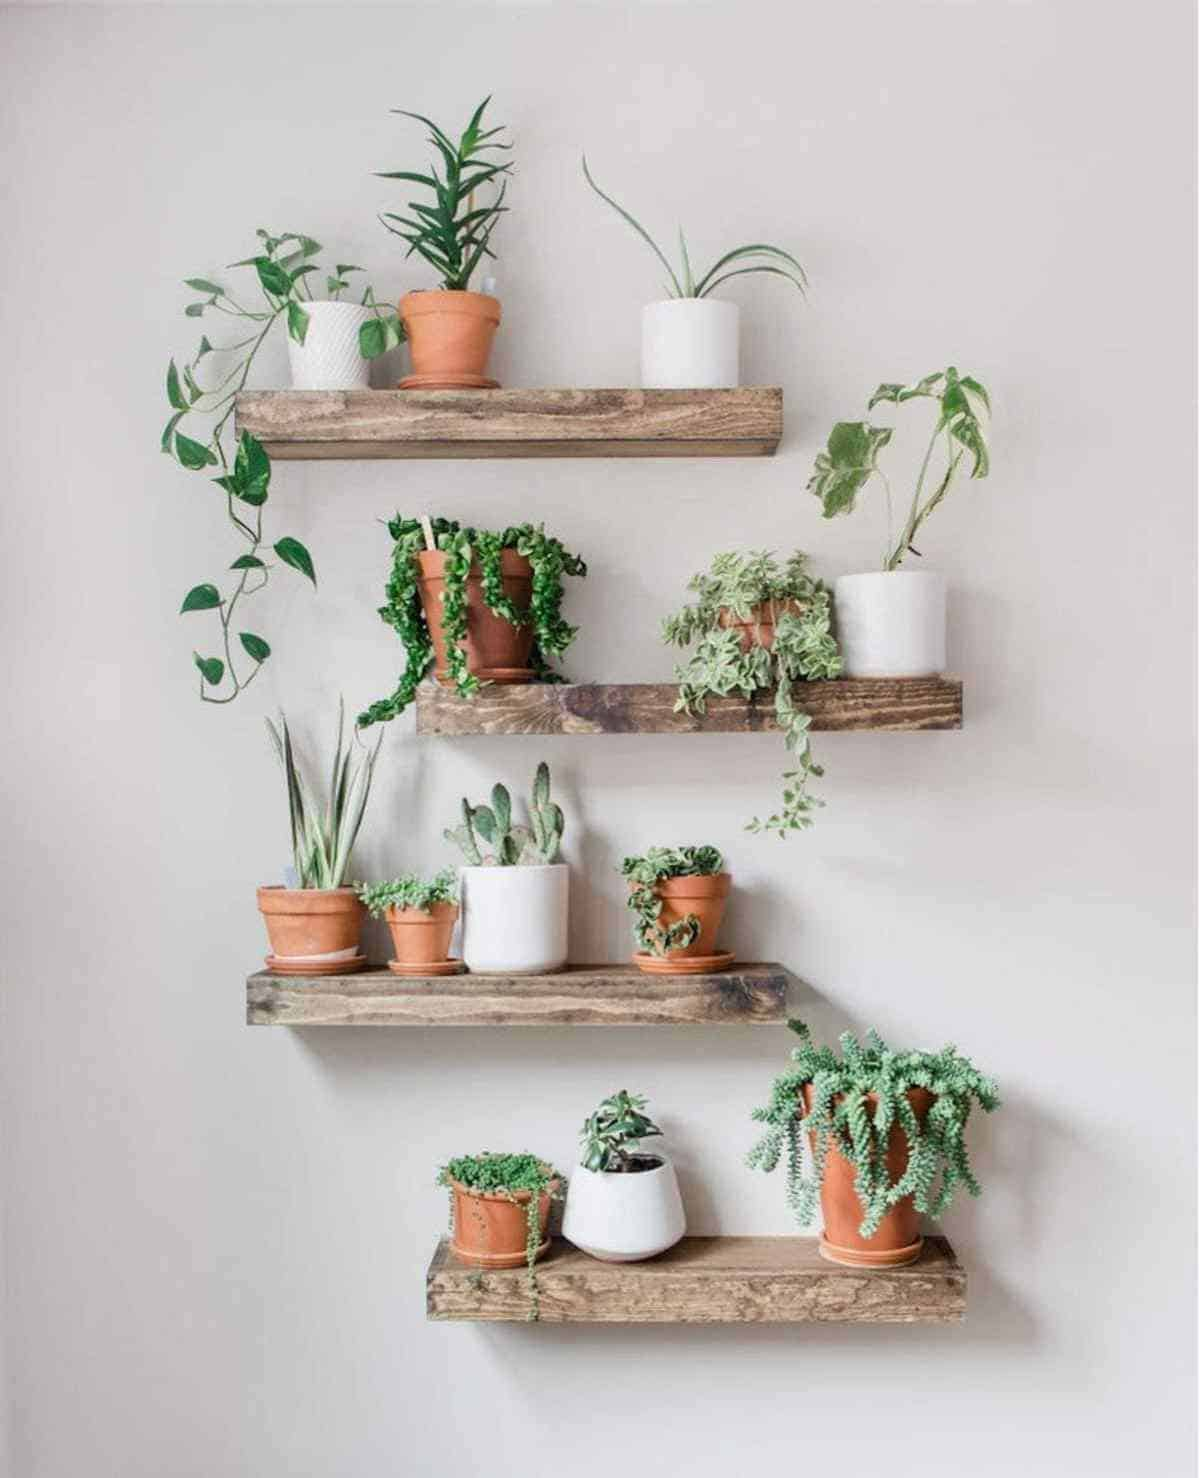 Shopping for Sustainable Furniture? Here's our list of the most eco friendly brands creating artisan show-pieces for any home… Image by Etsy Reclaimed #sustainablefurniture #ecofriendlyfurniture